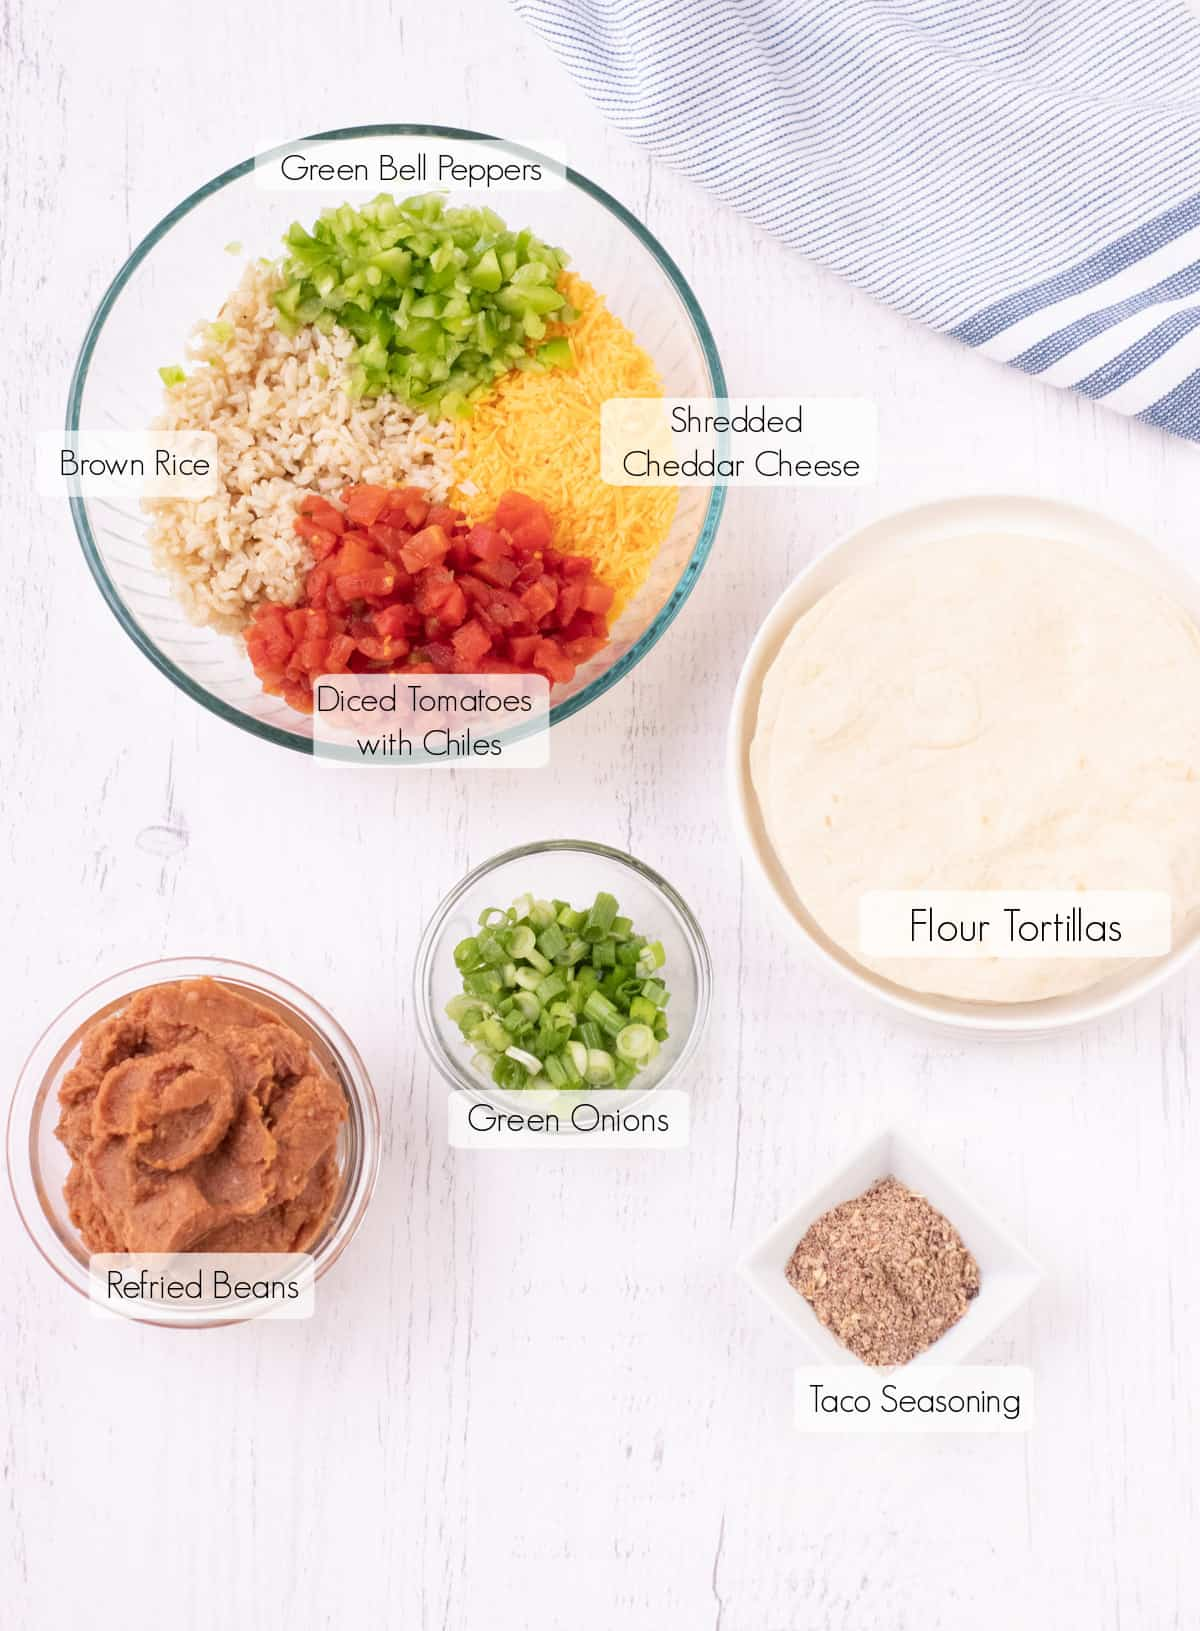 Labeled ingredients for making easy burrito bites.